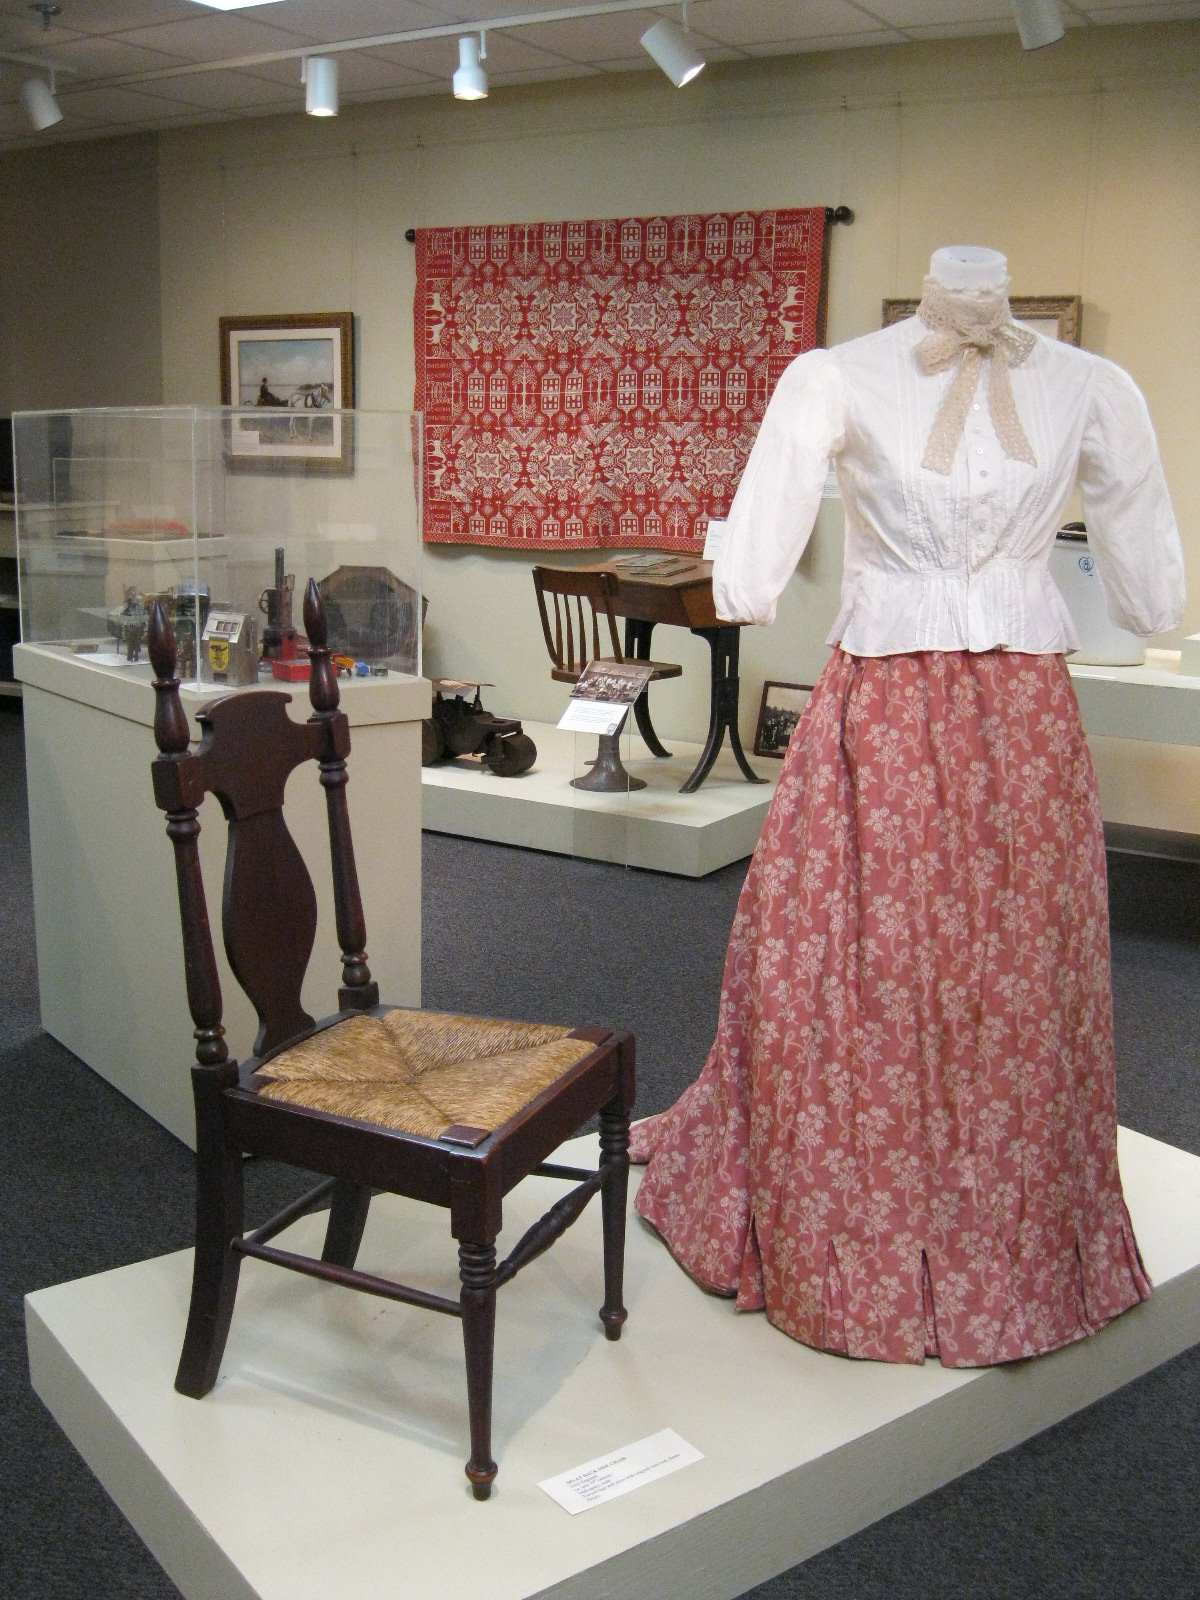 A peak inside the Barrington Preservation Society Museum